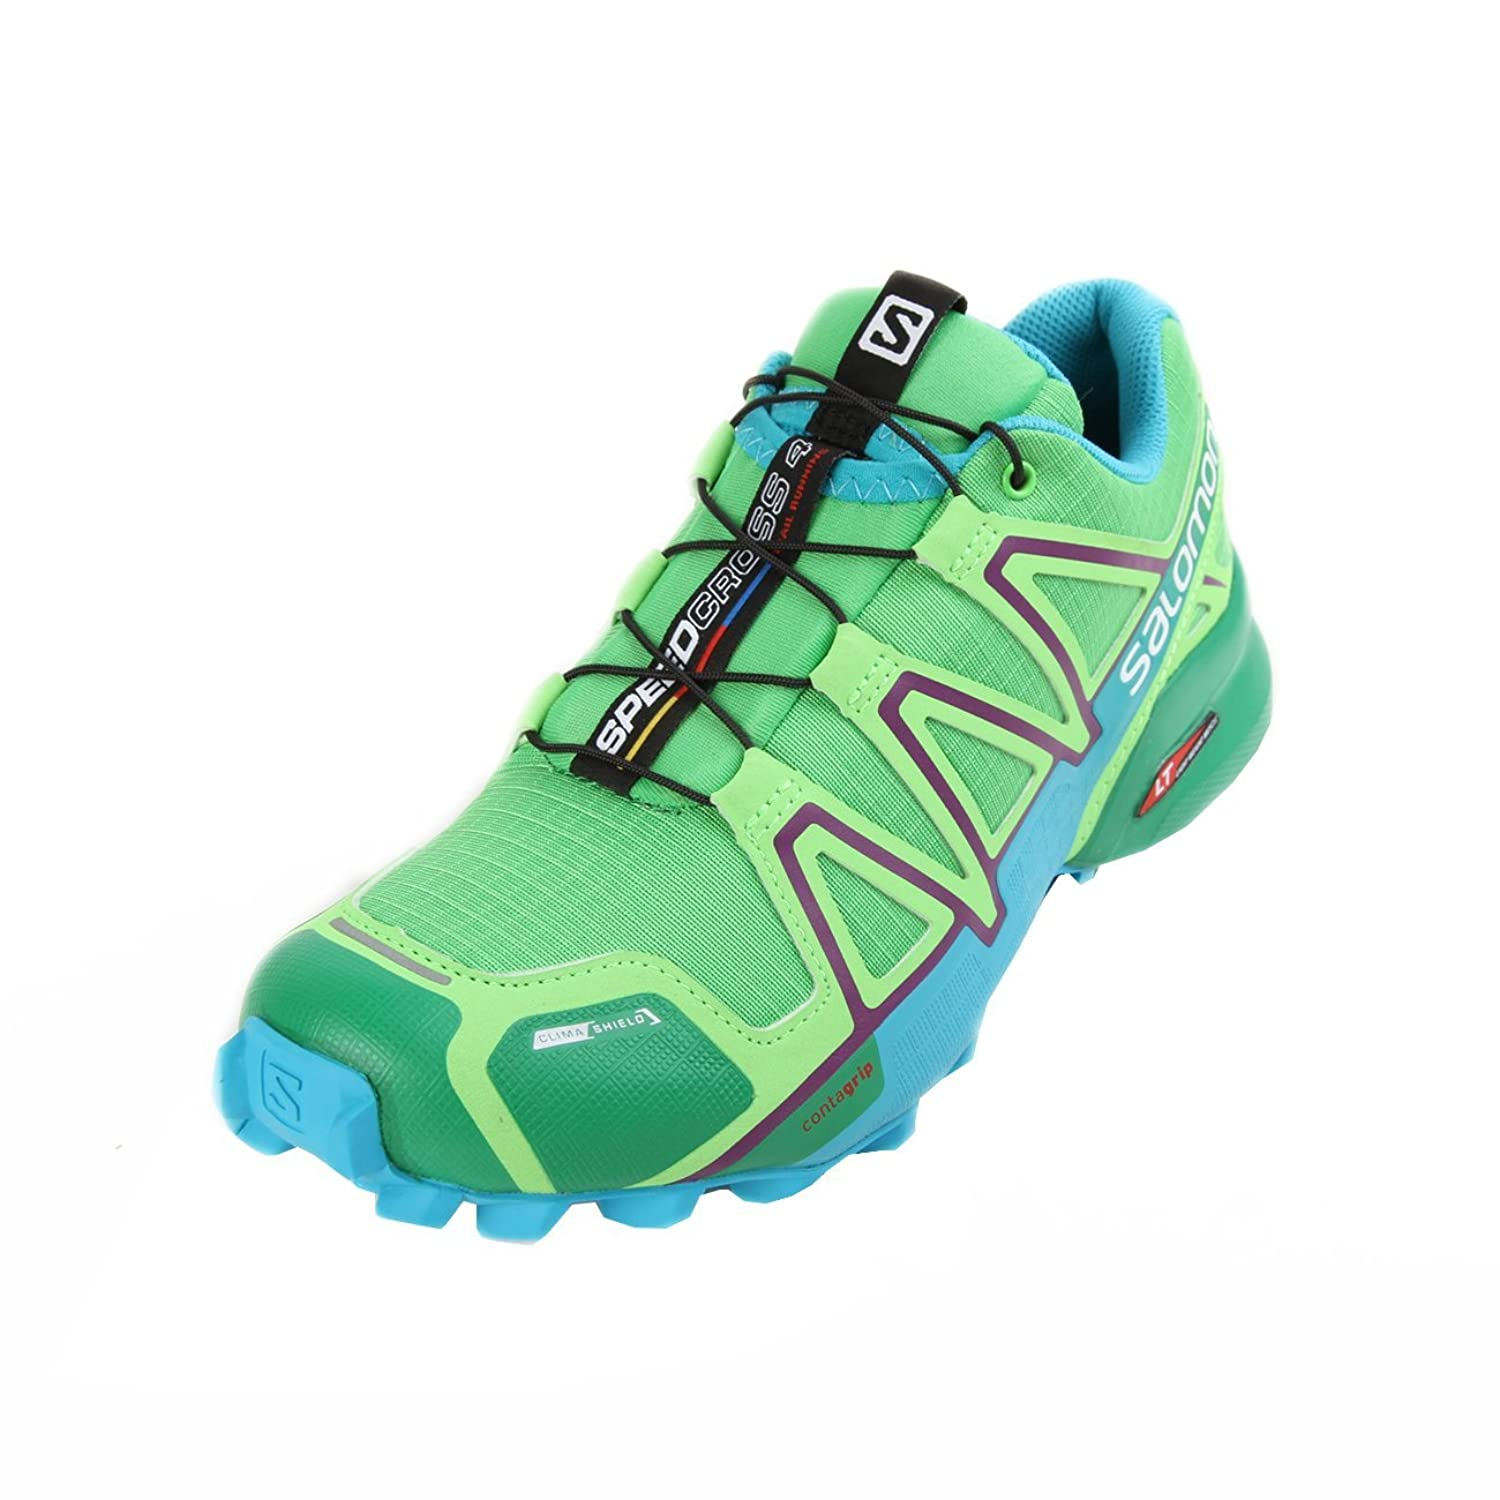 Salomon Speedcross 3 GTX Trail Running Shoe Womens — CampSaver